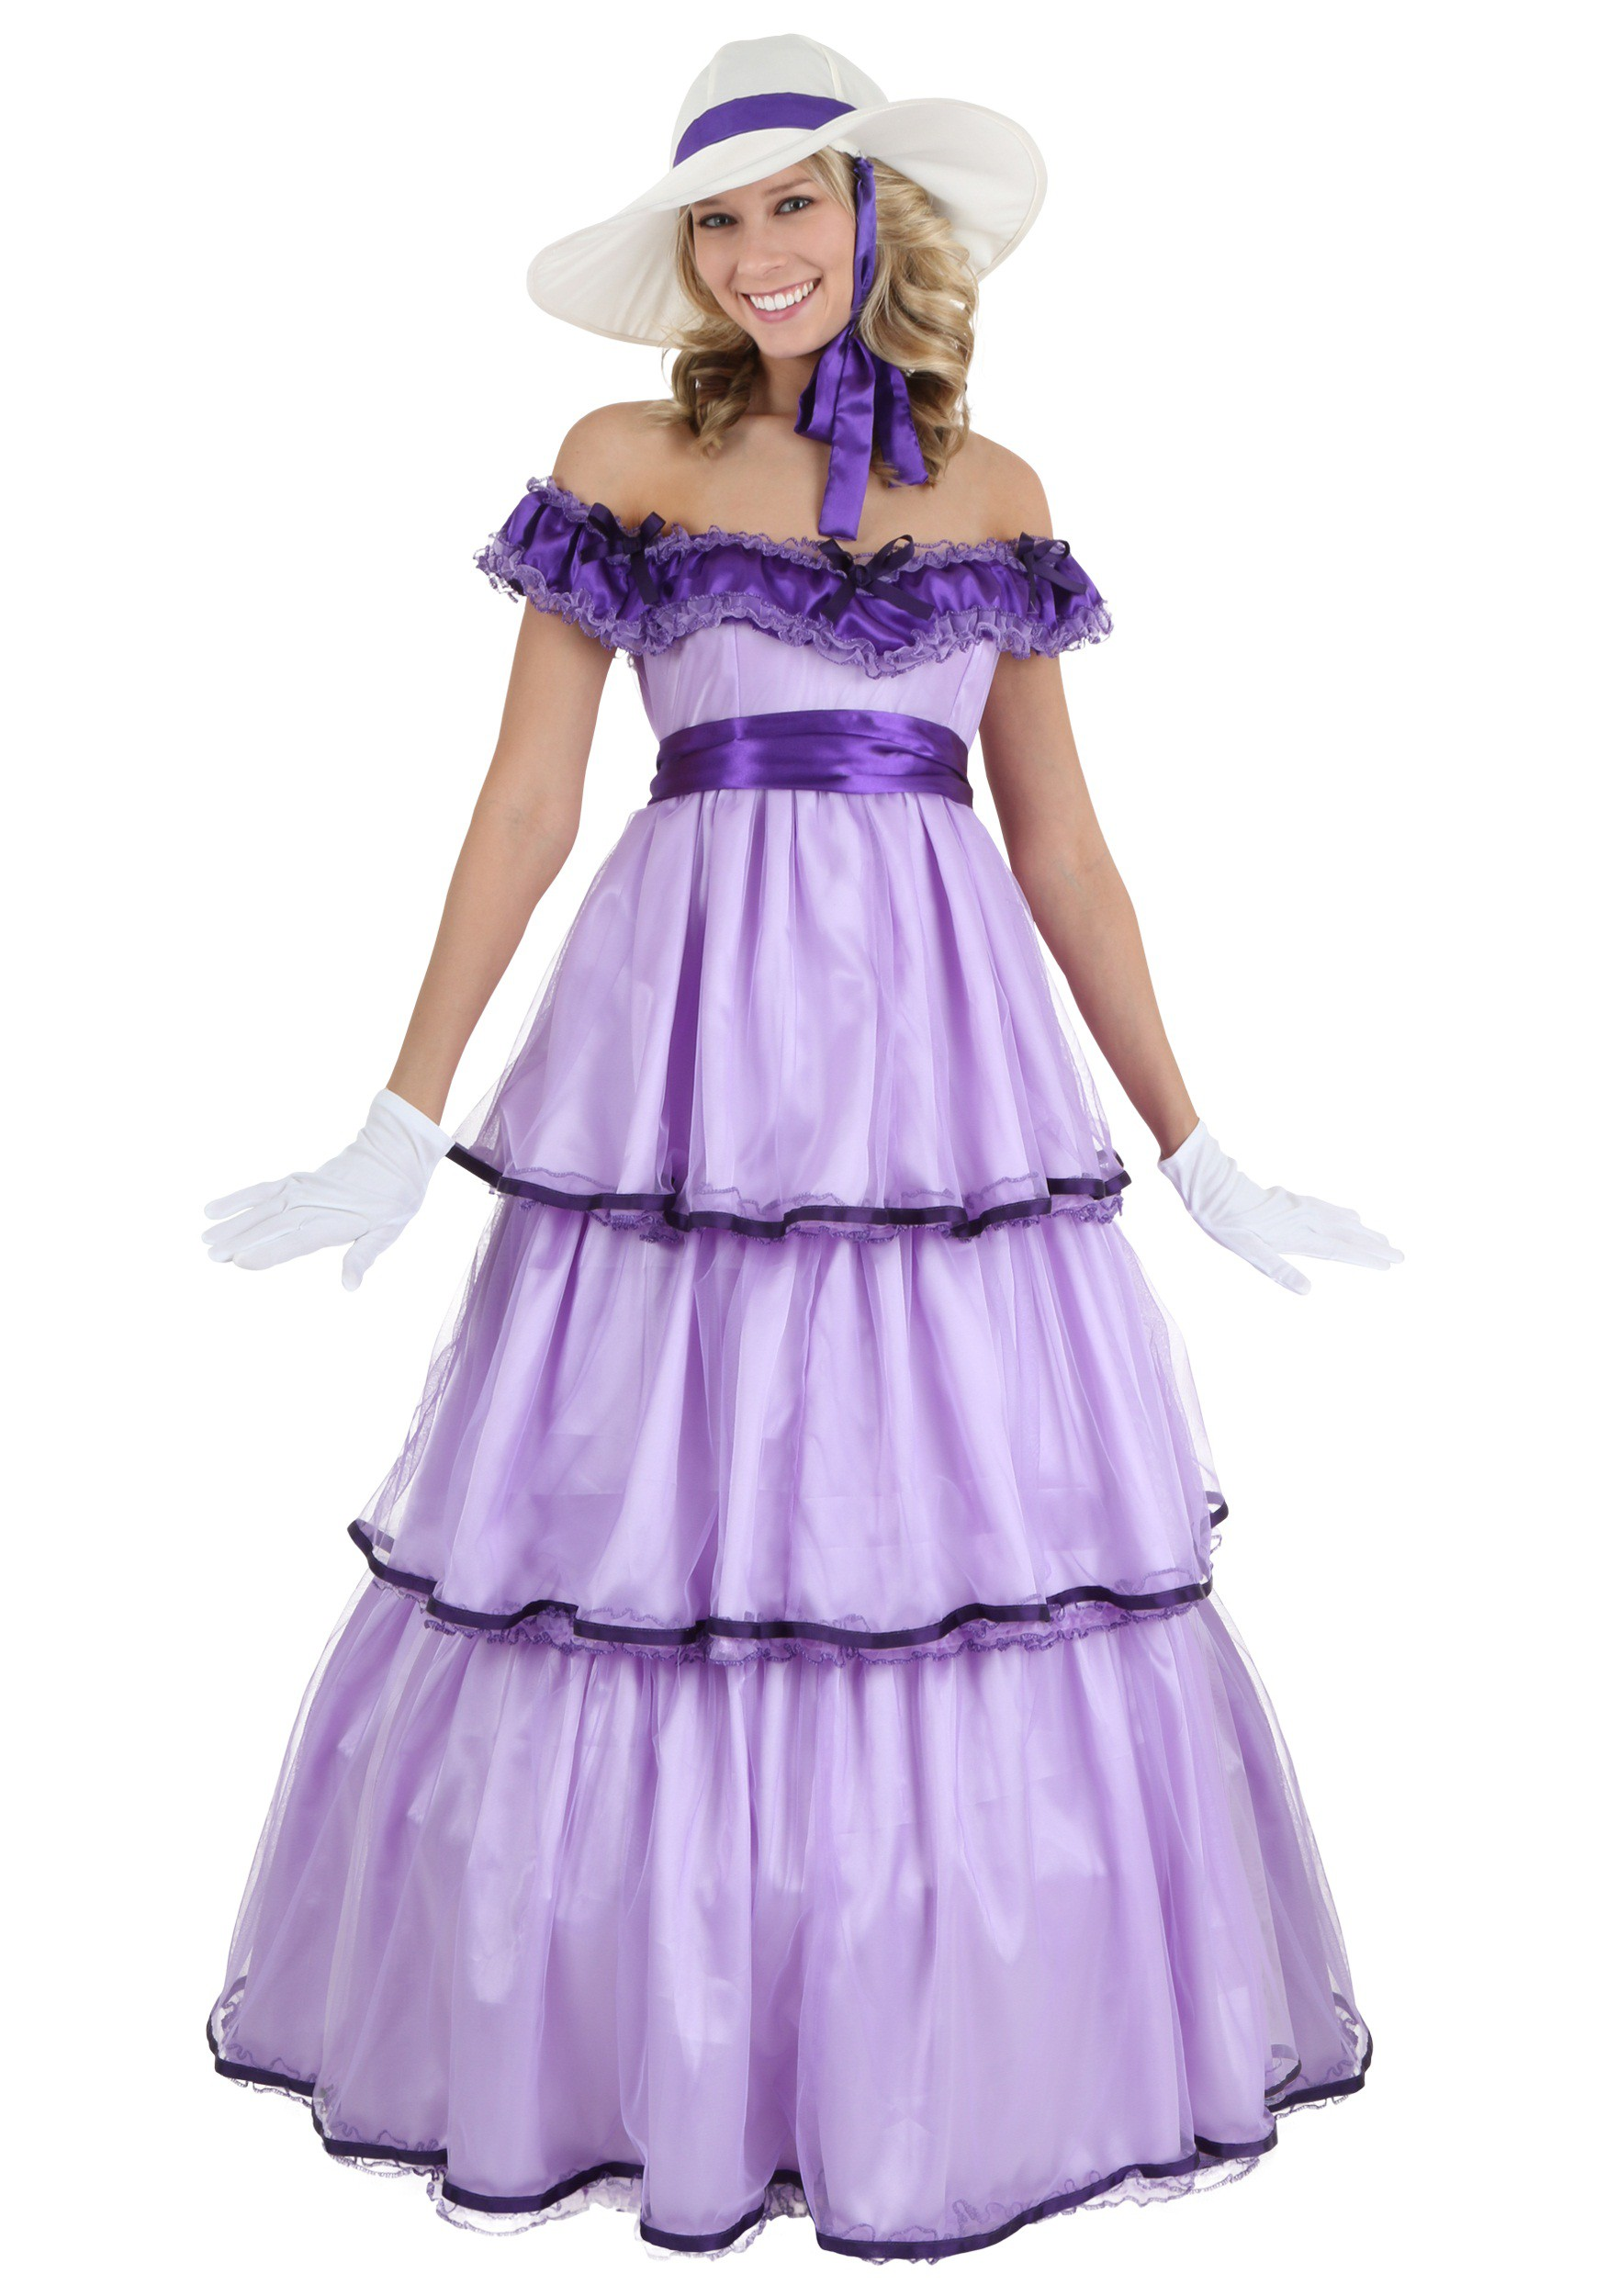 sc 1 st  Halloween Costumes : halloween costumes southern belle  - Germanpascual.Com